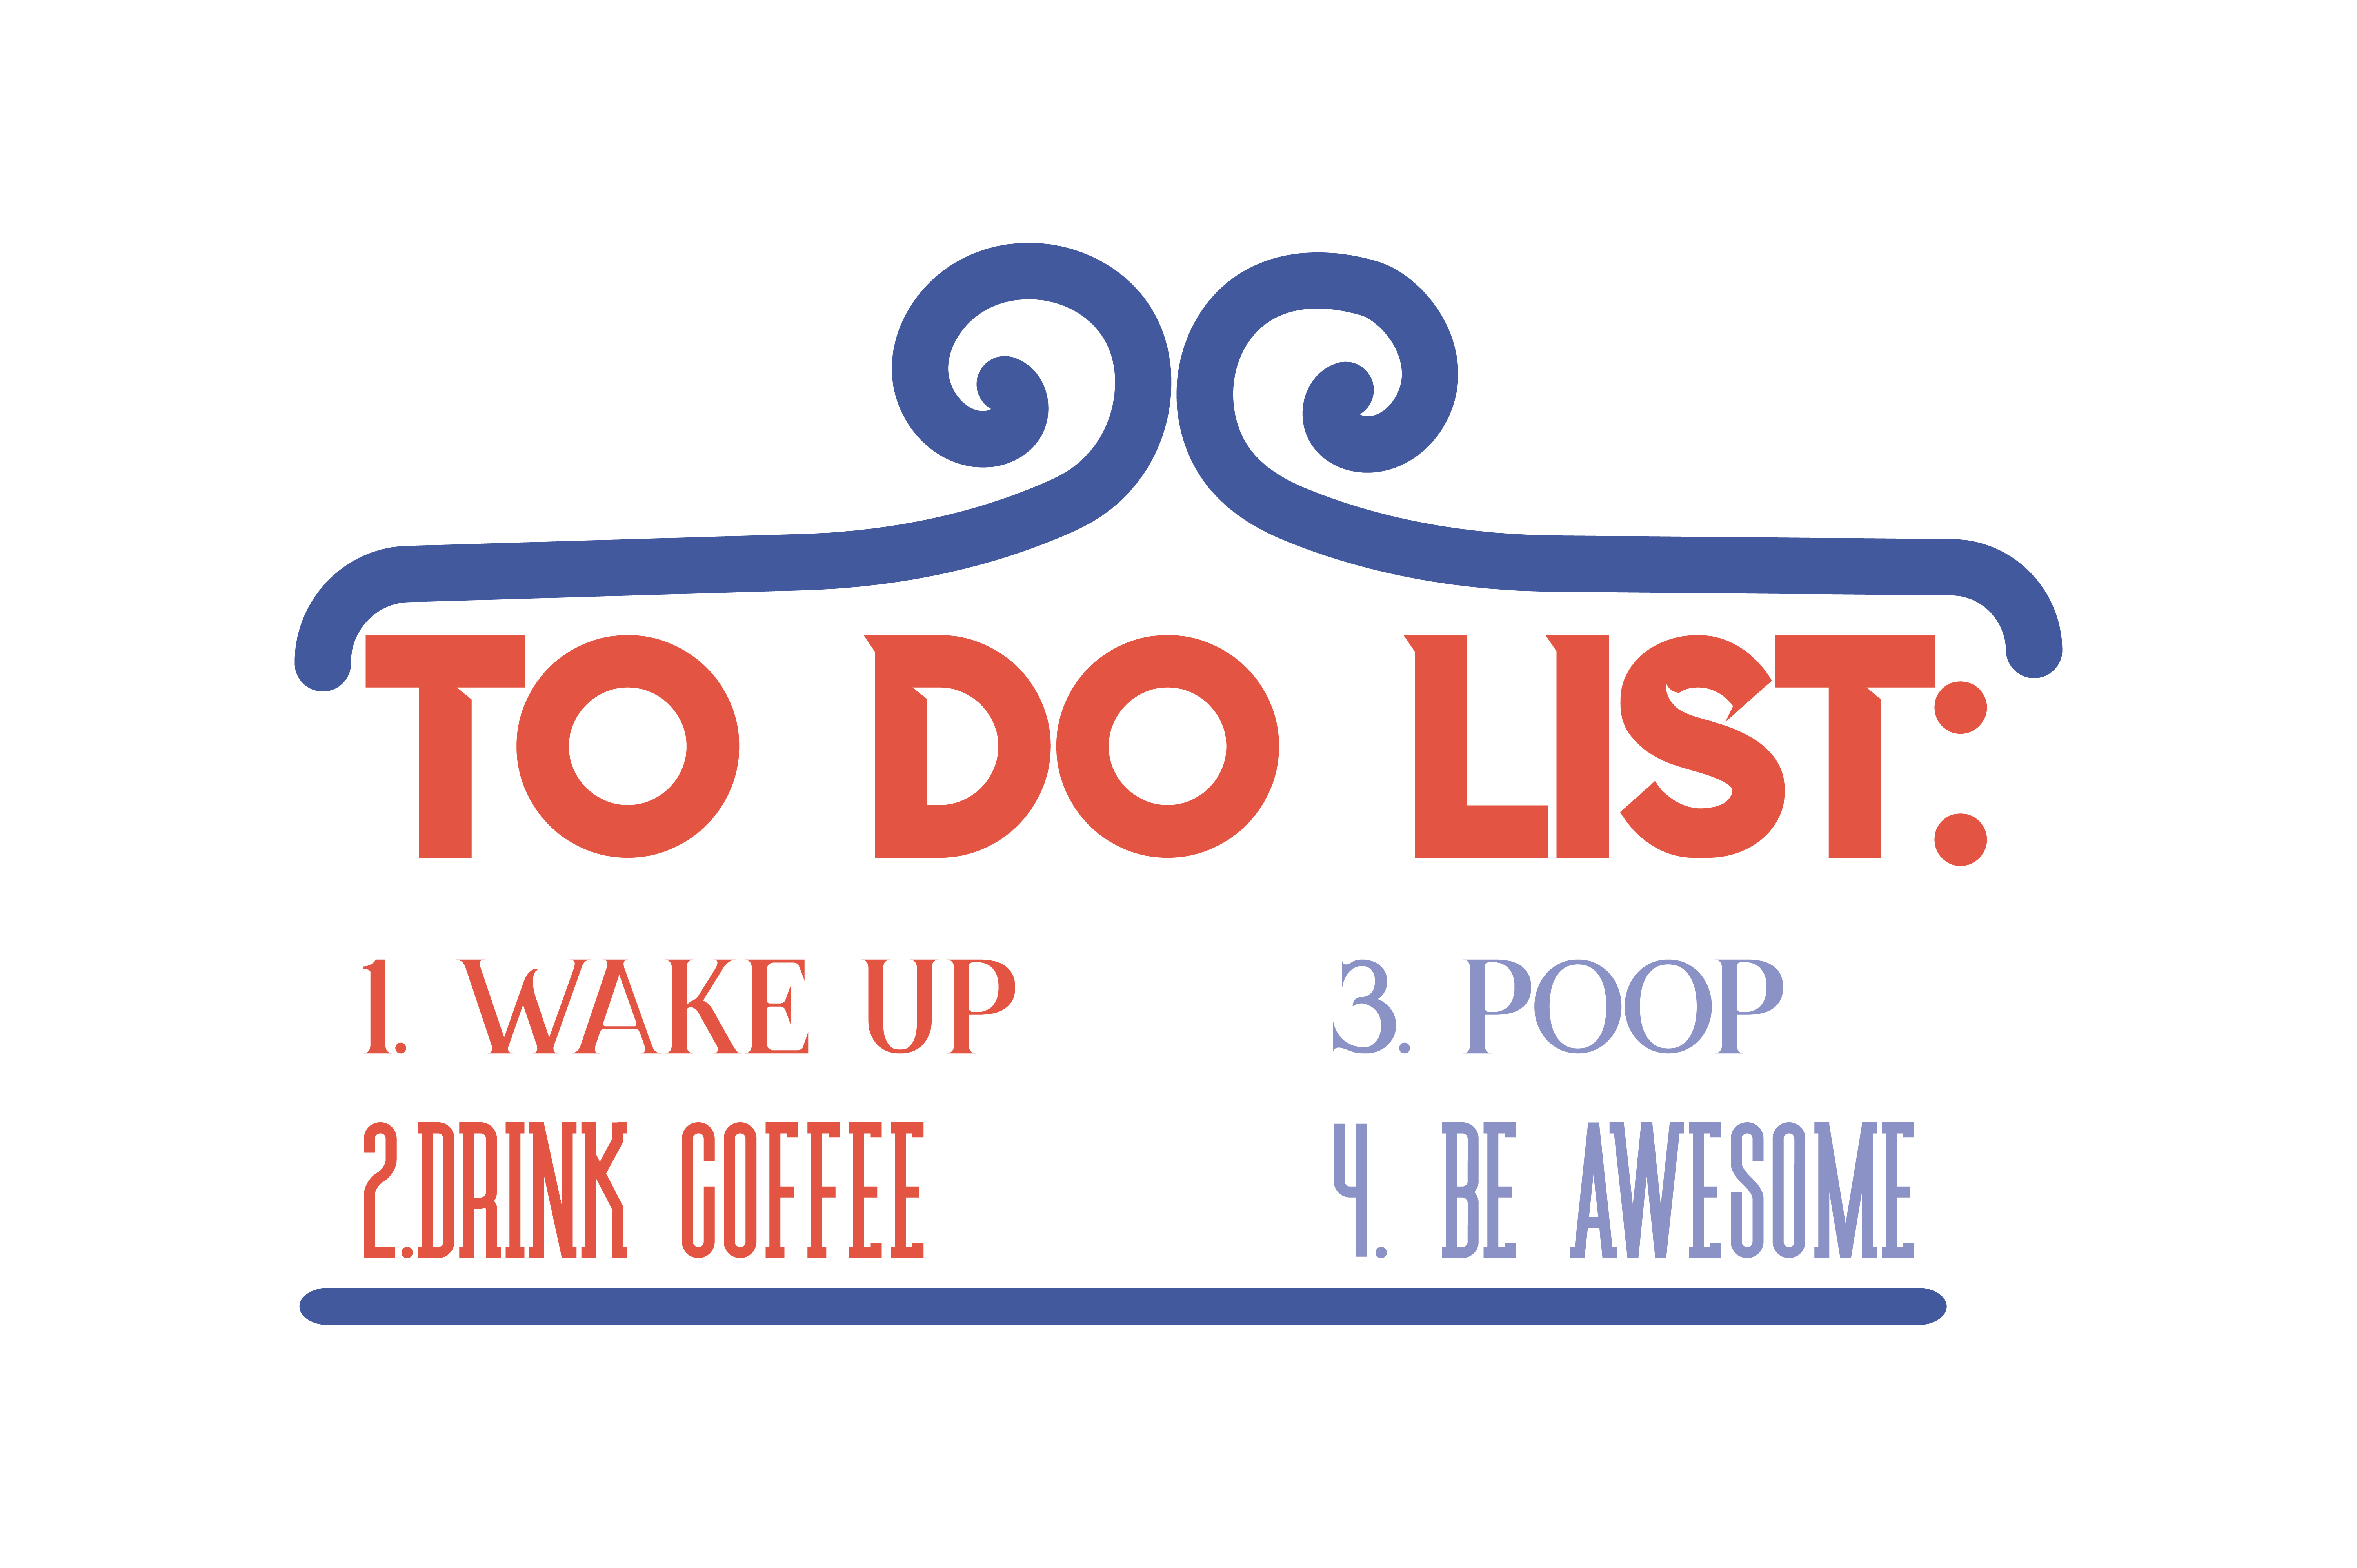 Download Free To Do List 1 Wake Up 2 Drink Coffee 3 Poop 4 Be Awesome Quote for Cricut Explore, Silhouette and other cutting machines.